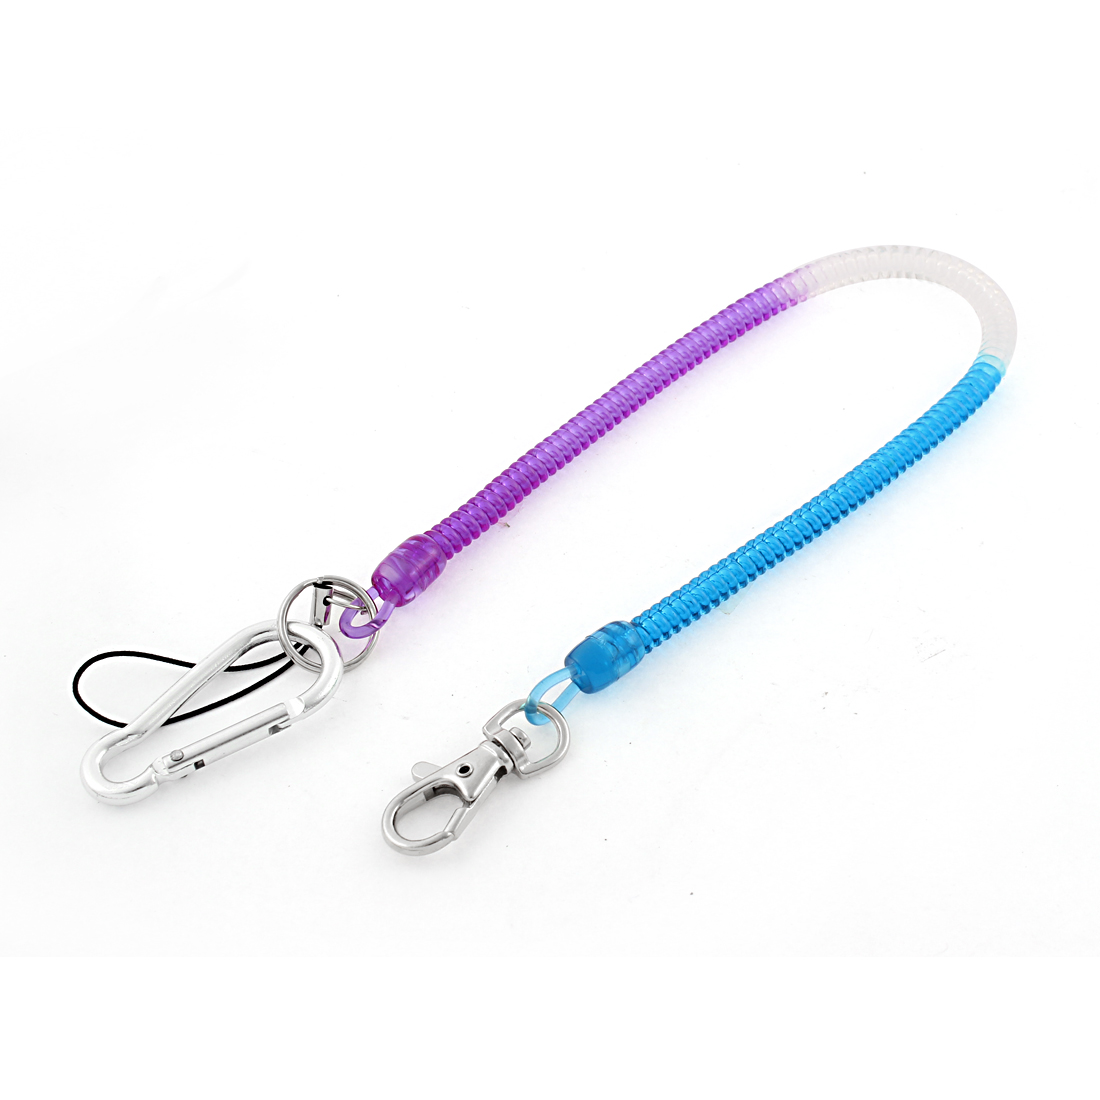 Flexible Stretchy Lanyard Spring Cord Strap Keychain Rope Key Holder Pin